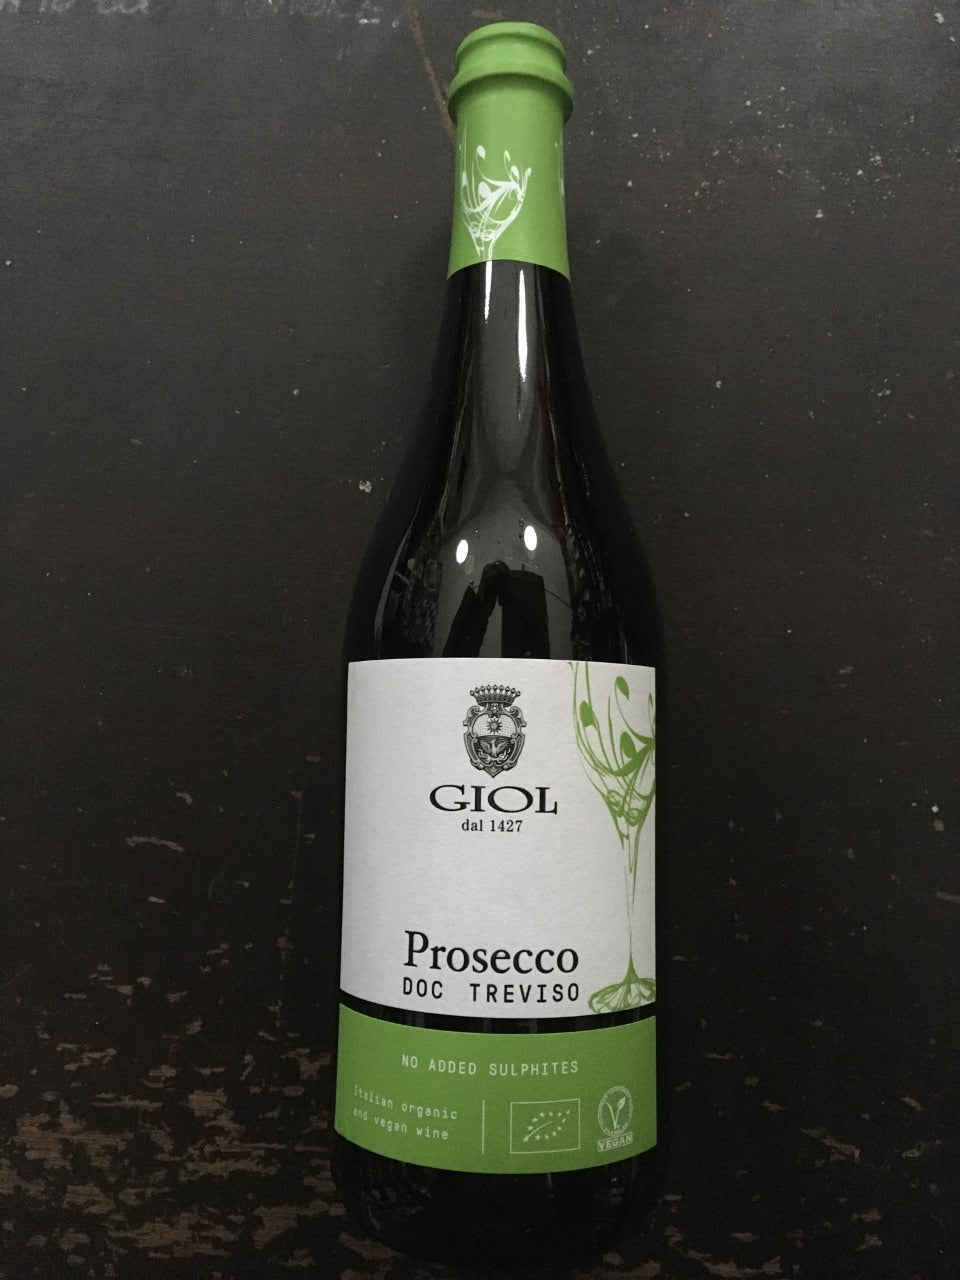 Giol No Added Sulphite Prosecco